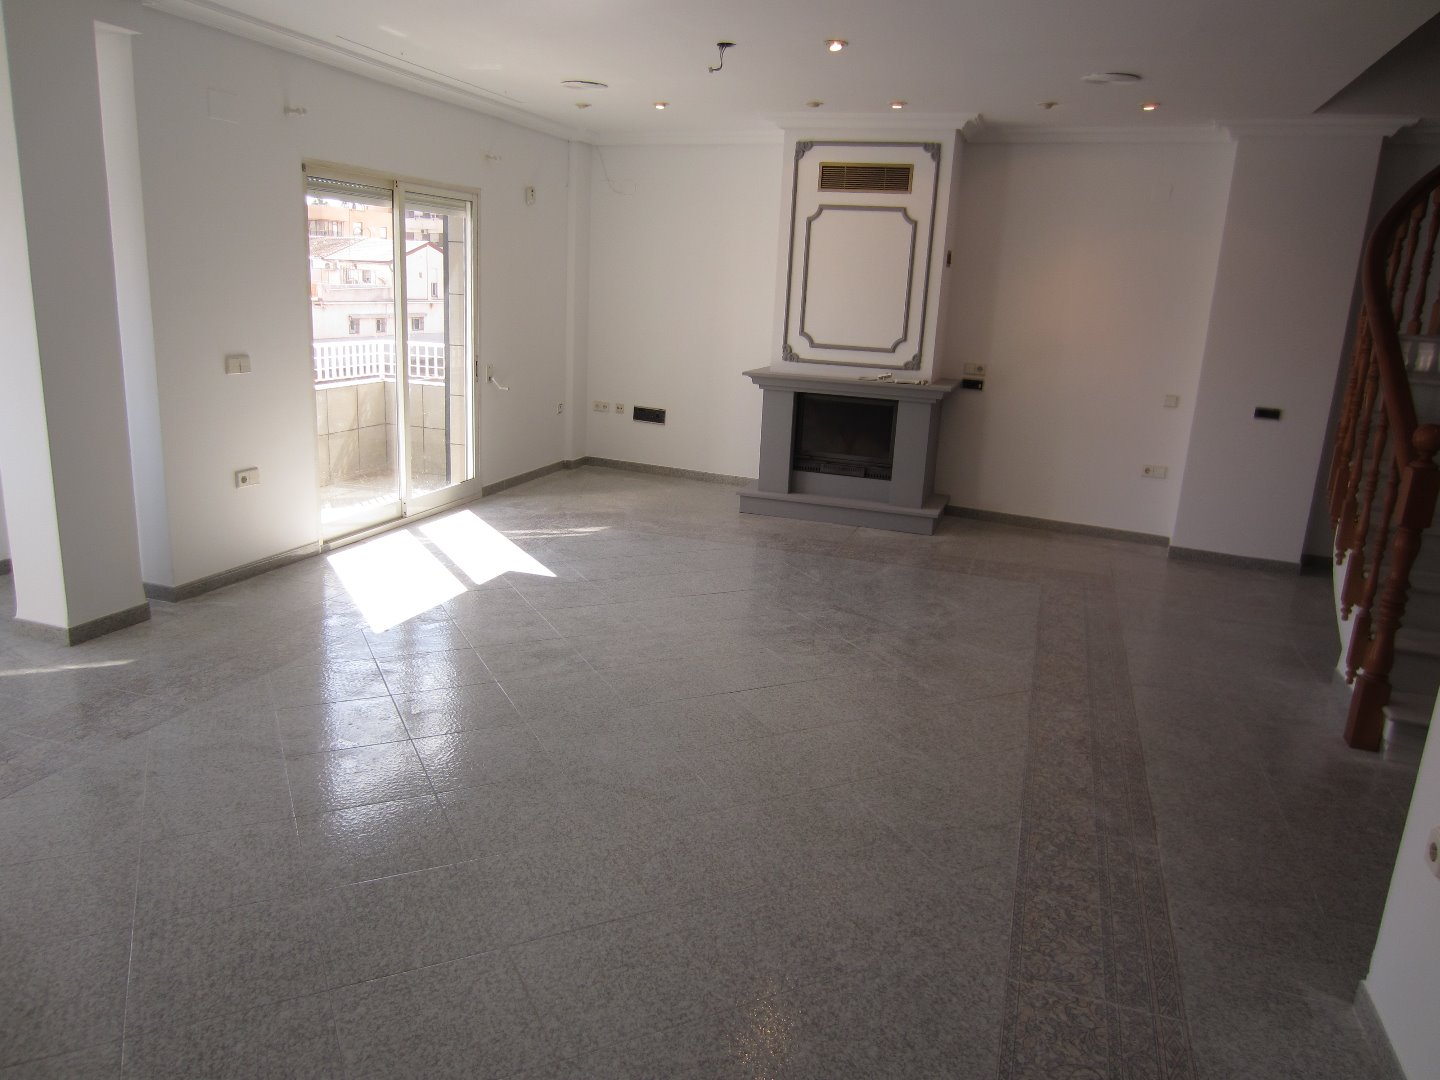 Location Appartement  Puzol-próximo a consum